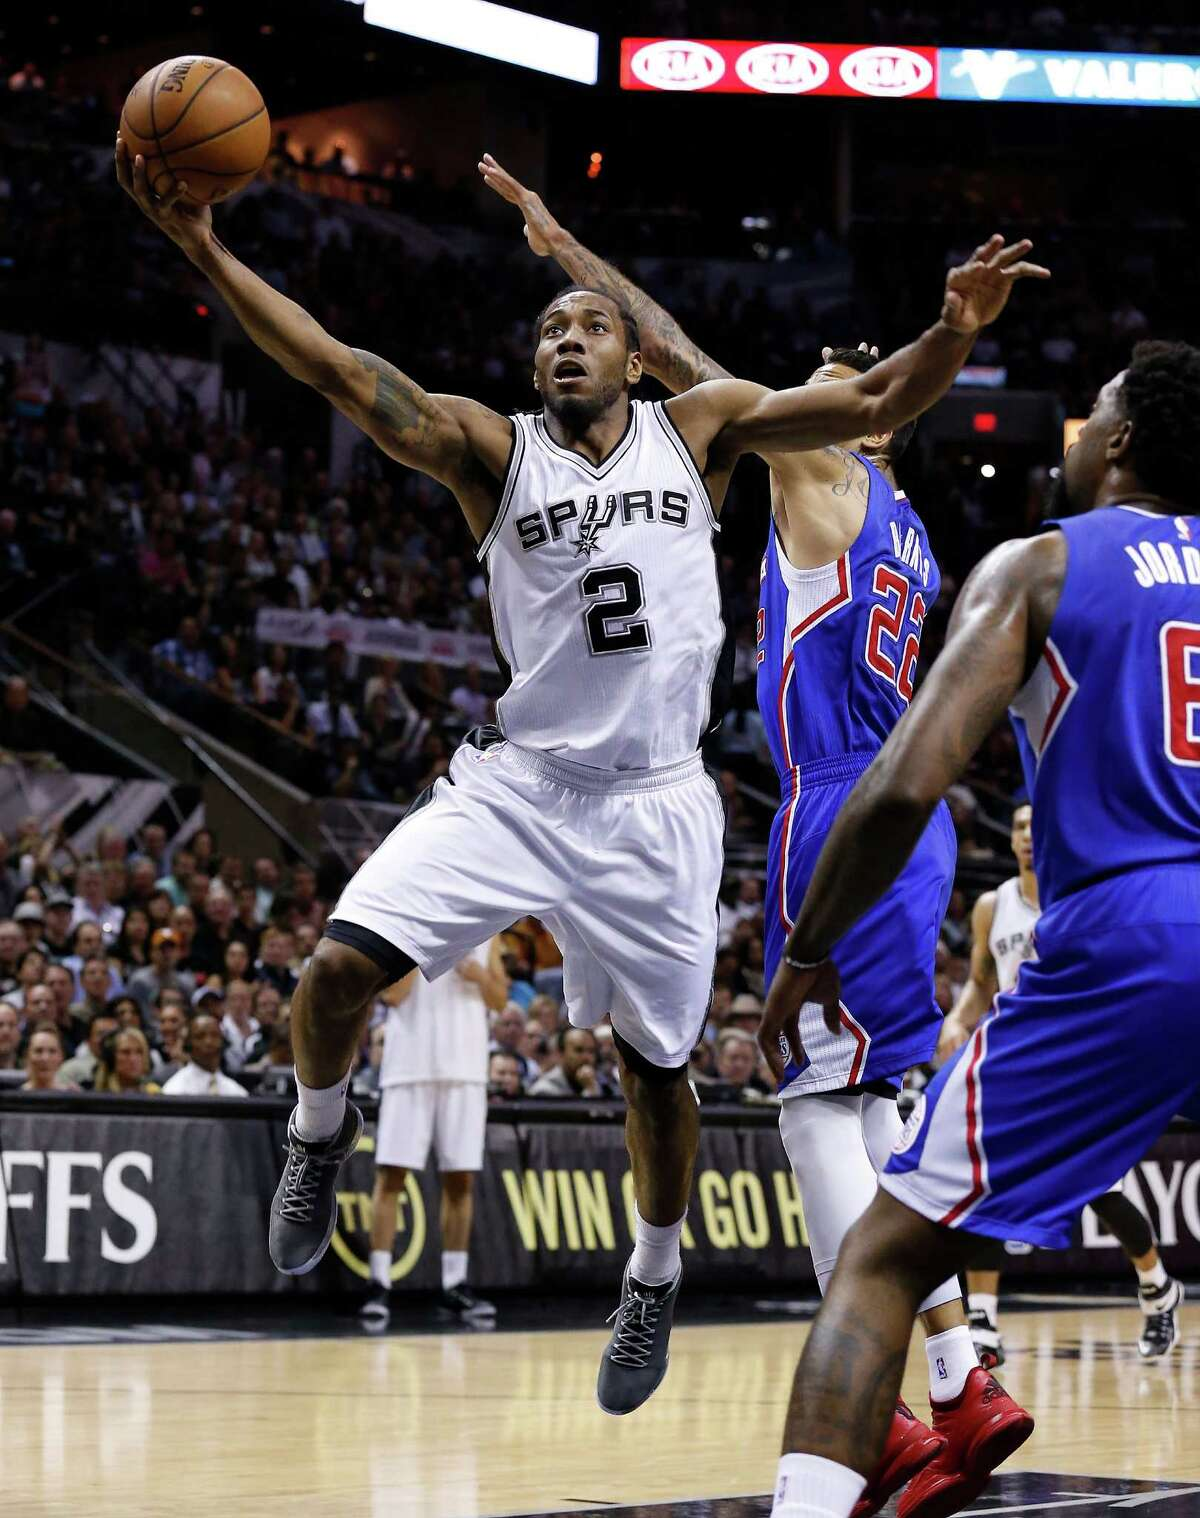 Spurs' Kawhi Leonard (02) goes in for layup against Los Angeles Clippers' Matt Barnes (22) during Game 6 of the first round of the Western Conference playoffs at the AT&T Center on Thursday, Apr. 30, 2015.